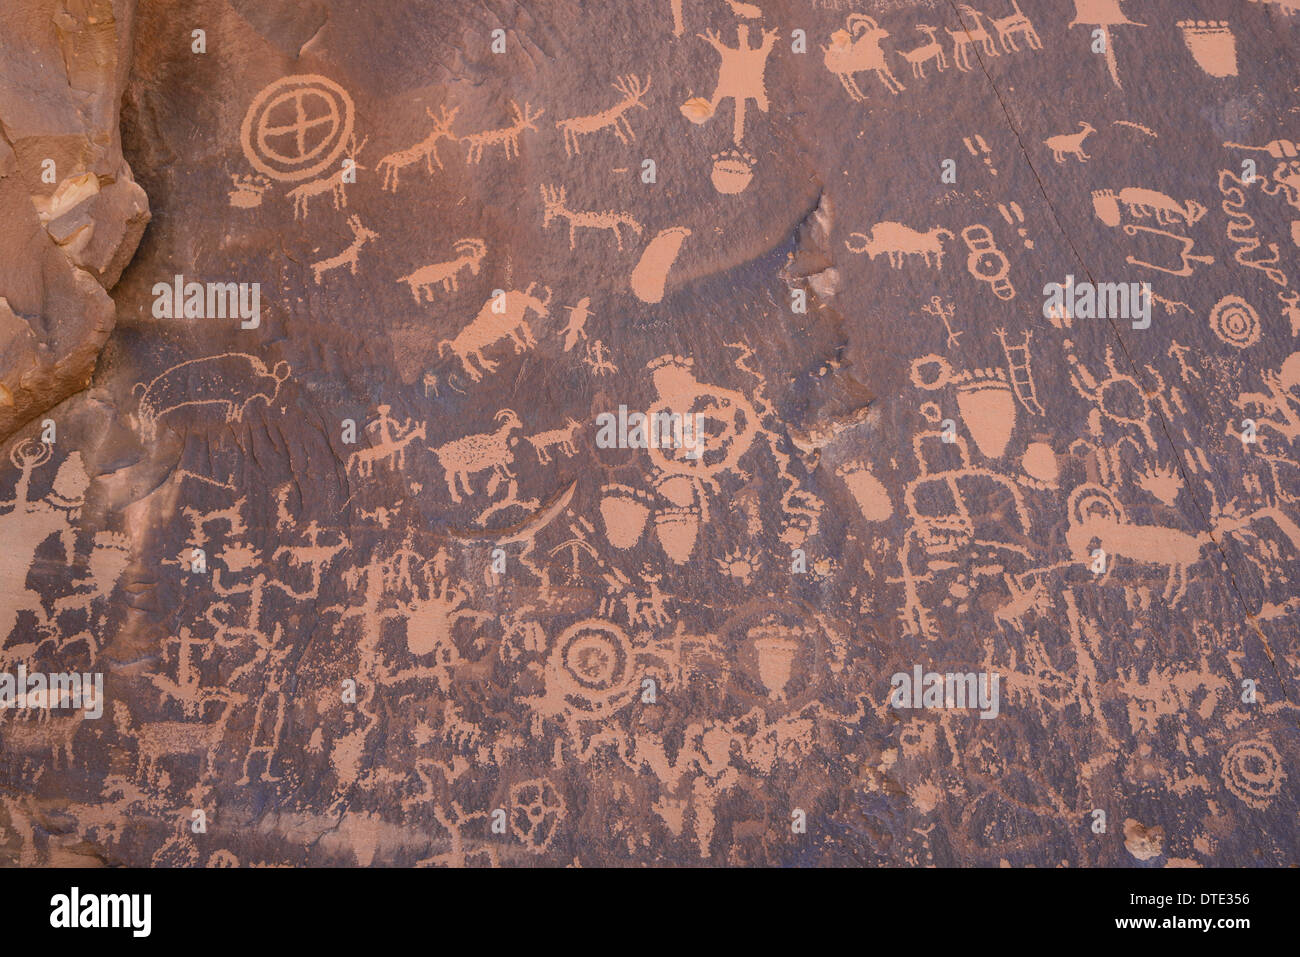 Ancient Indian rock art, petroglyphs, Newspaper Rock, near The Needles section of Canyonlands National Park, Utah, USA - Stock Image